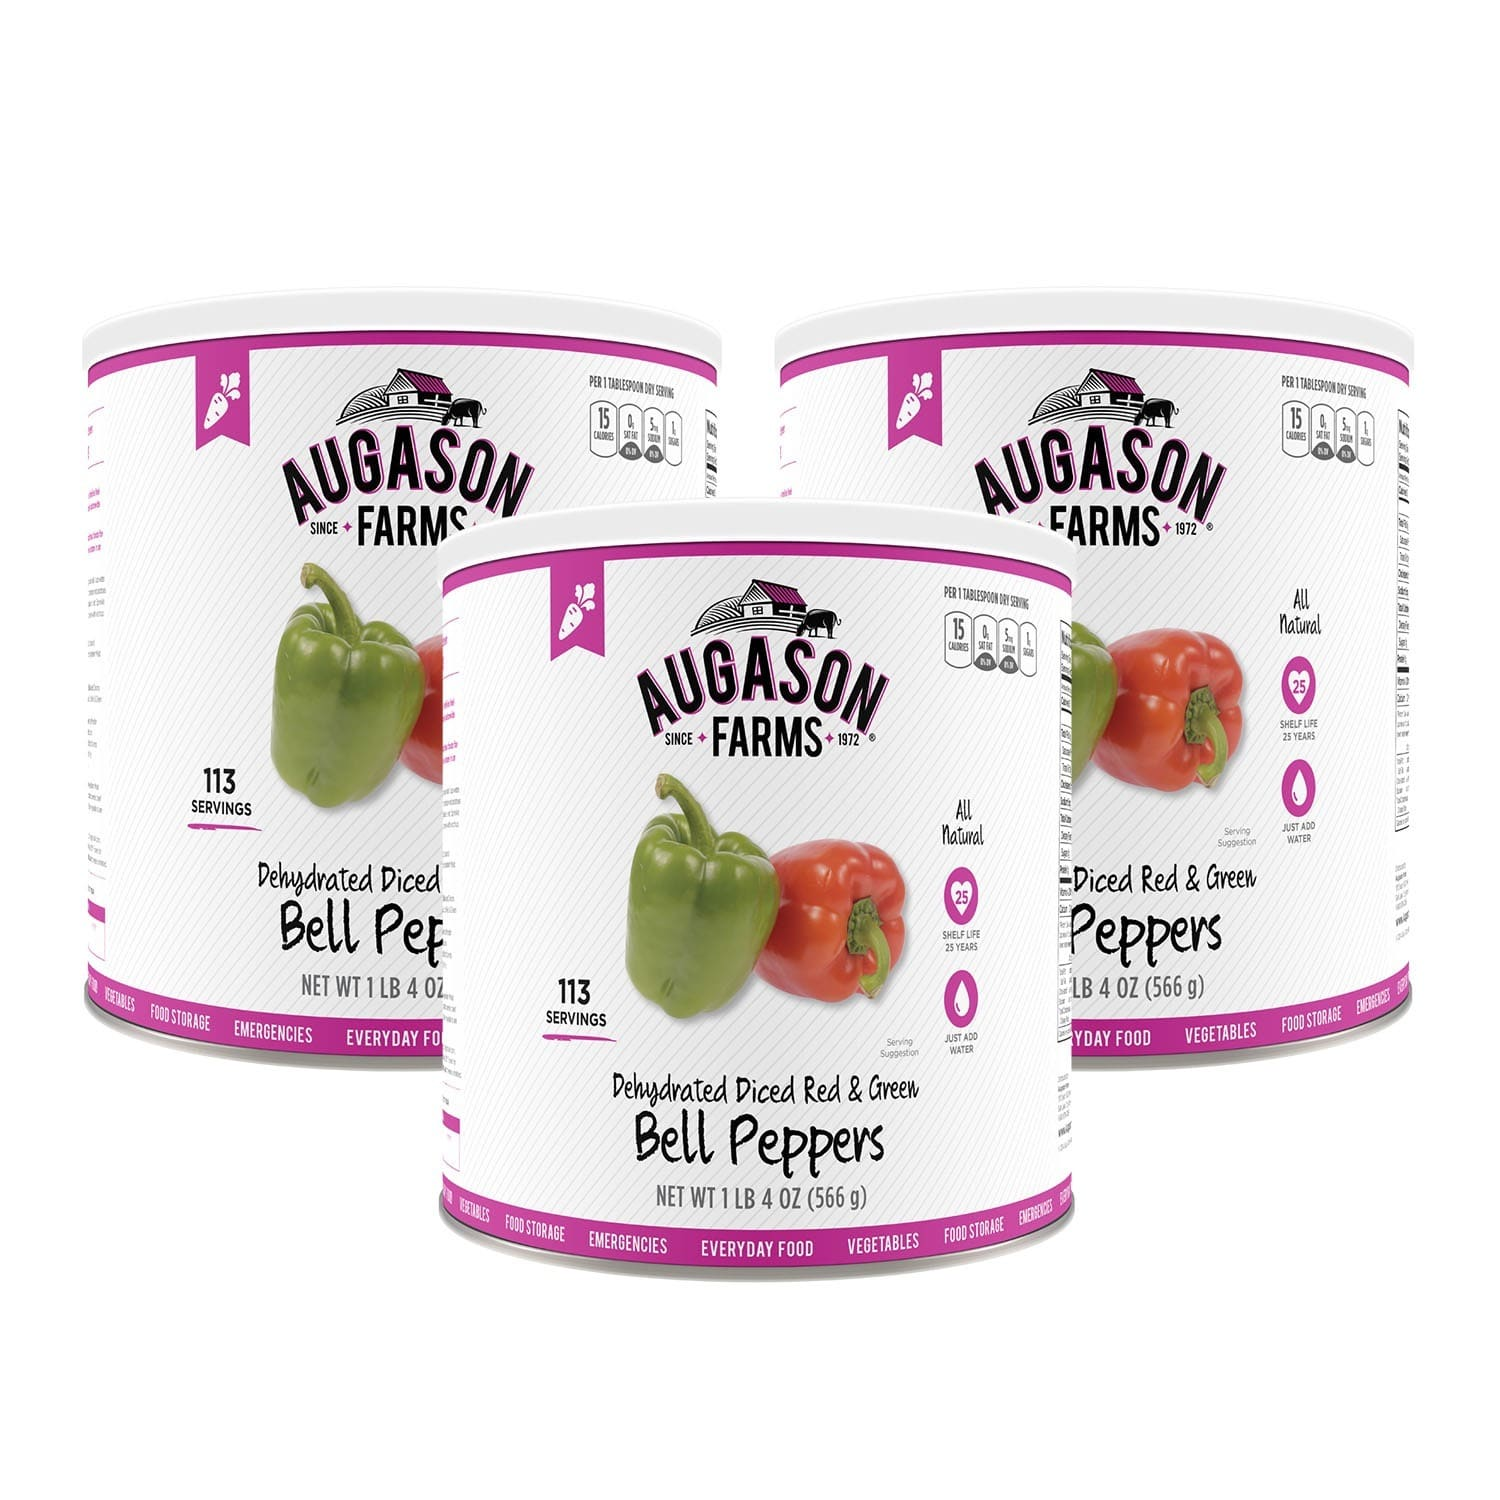 Augason Farms Dehydrated Diced Red & Green Bell Peppers 20 oz #10 Can by Overstock